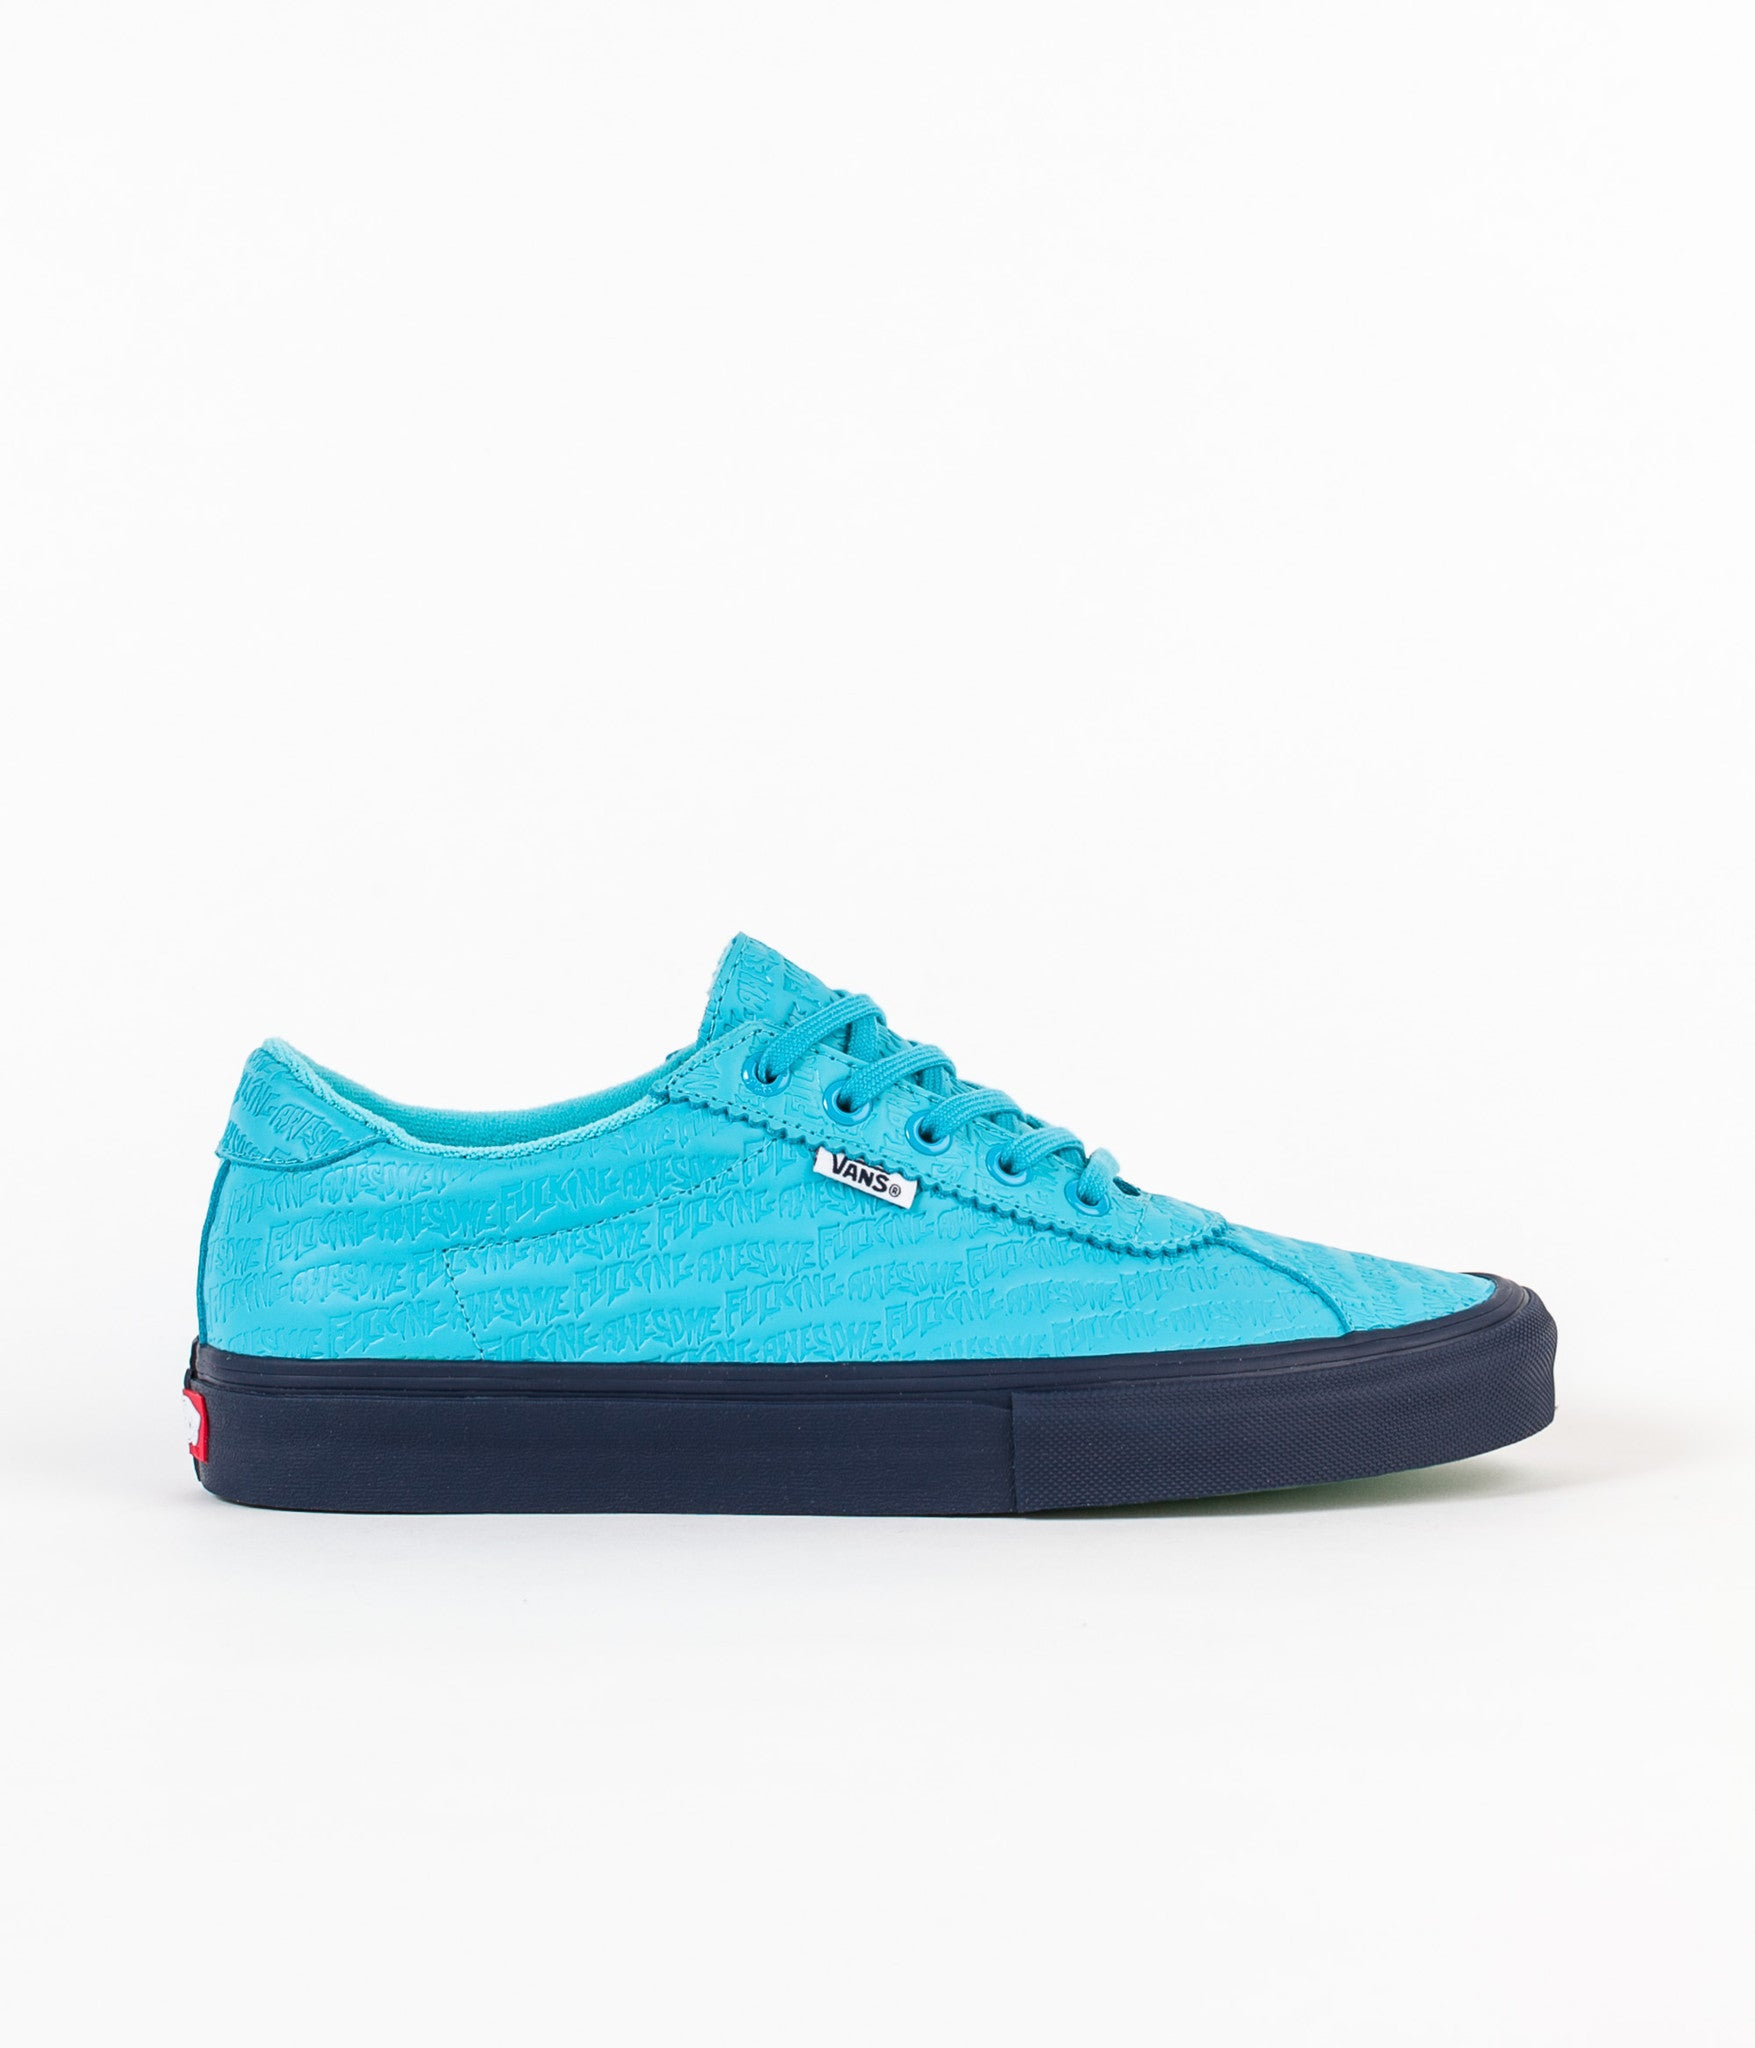 c5b6304c553525 Vans x Fucking Awesome Epoch  94 Pro Shoes - Bright Blue